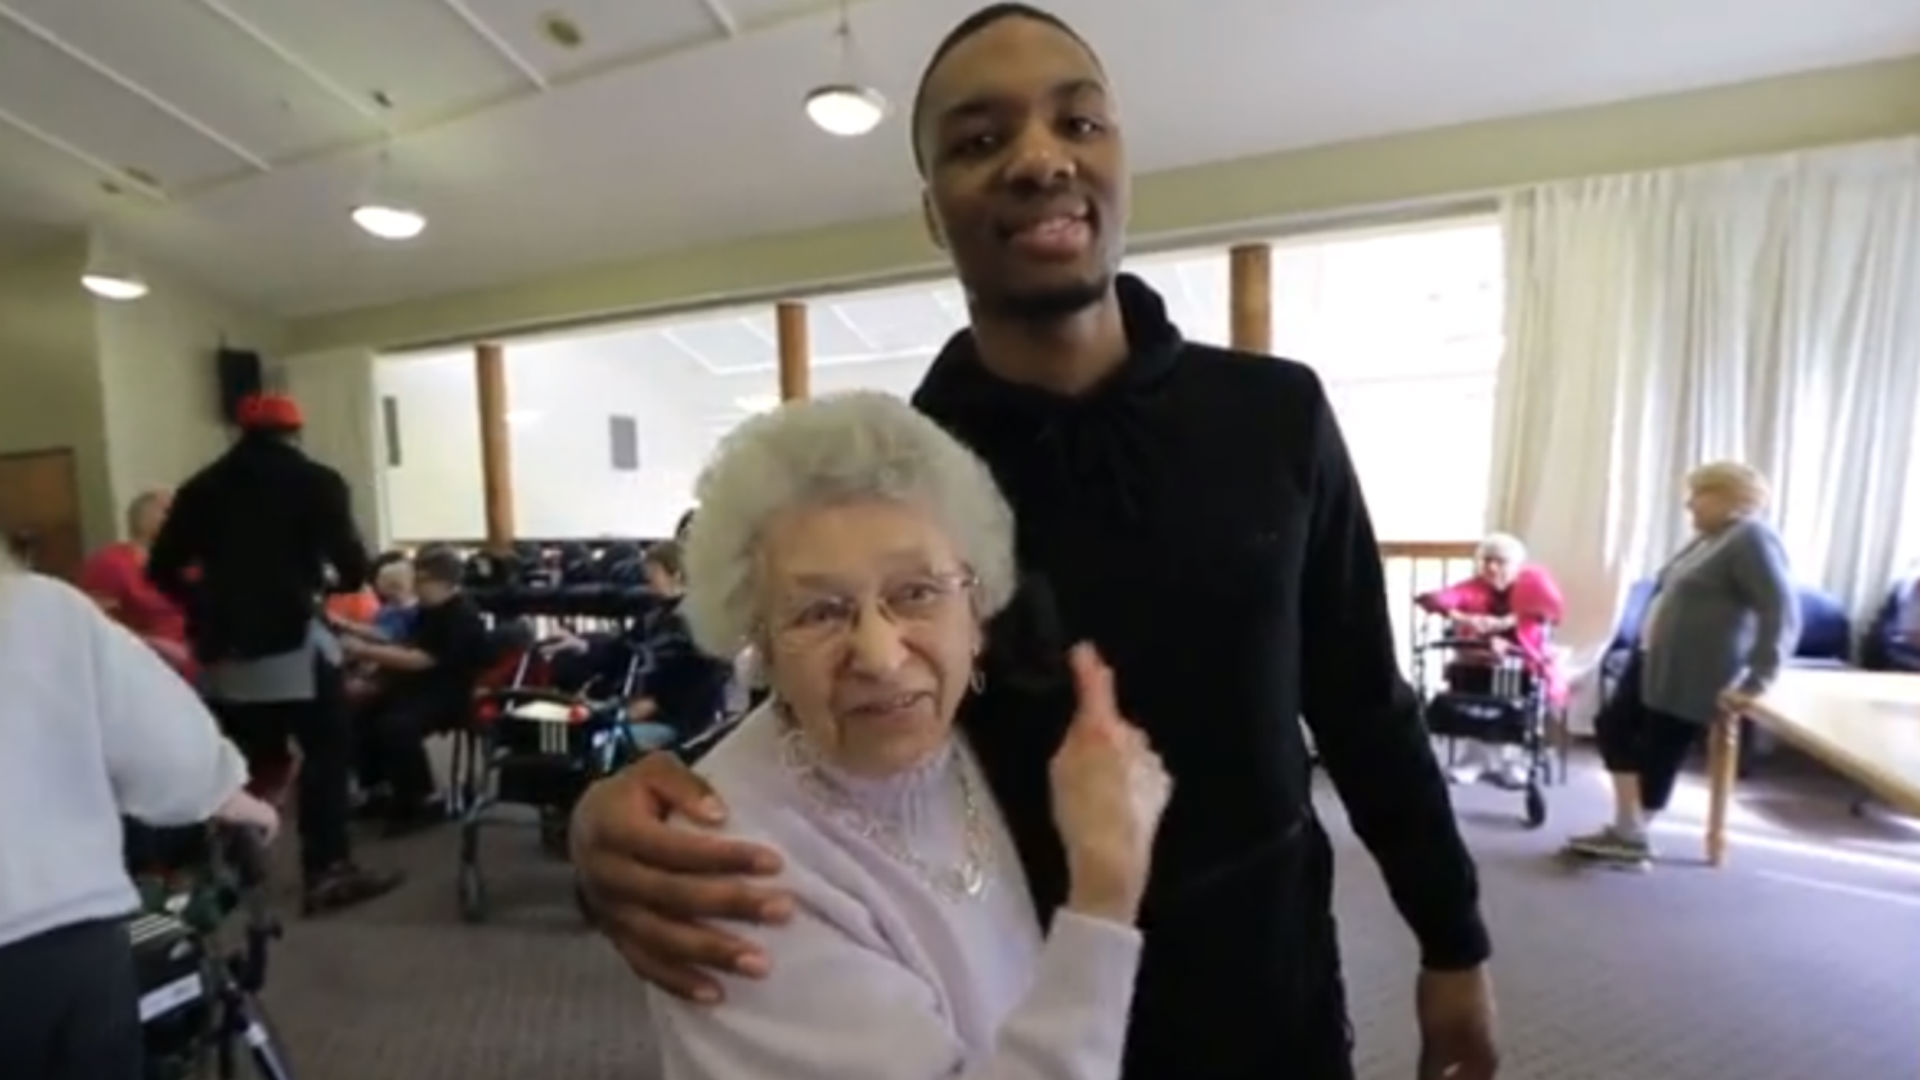 Damian Lillard hooks senior citizens up with free signature shoes